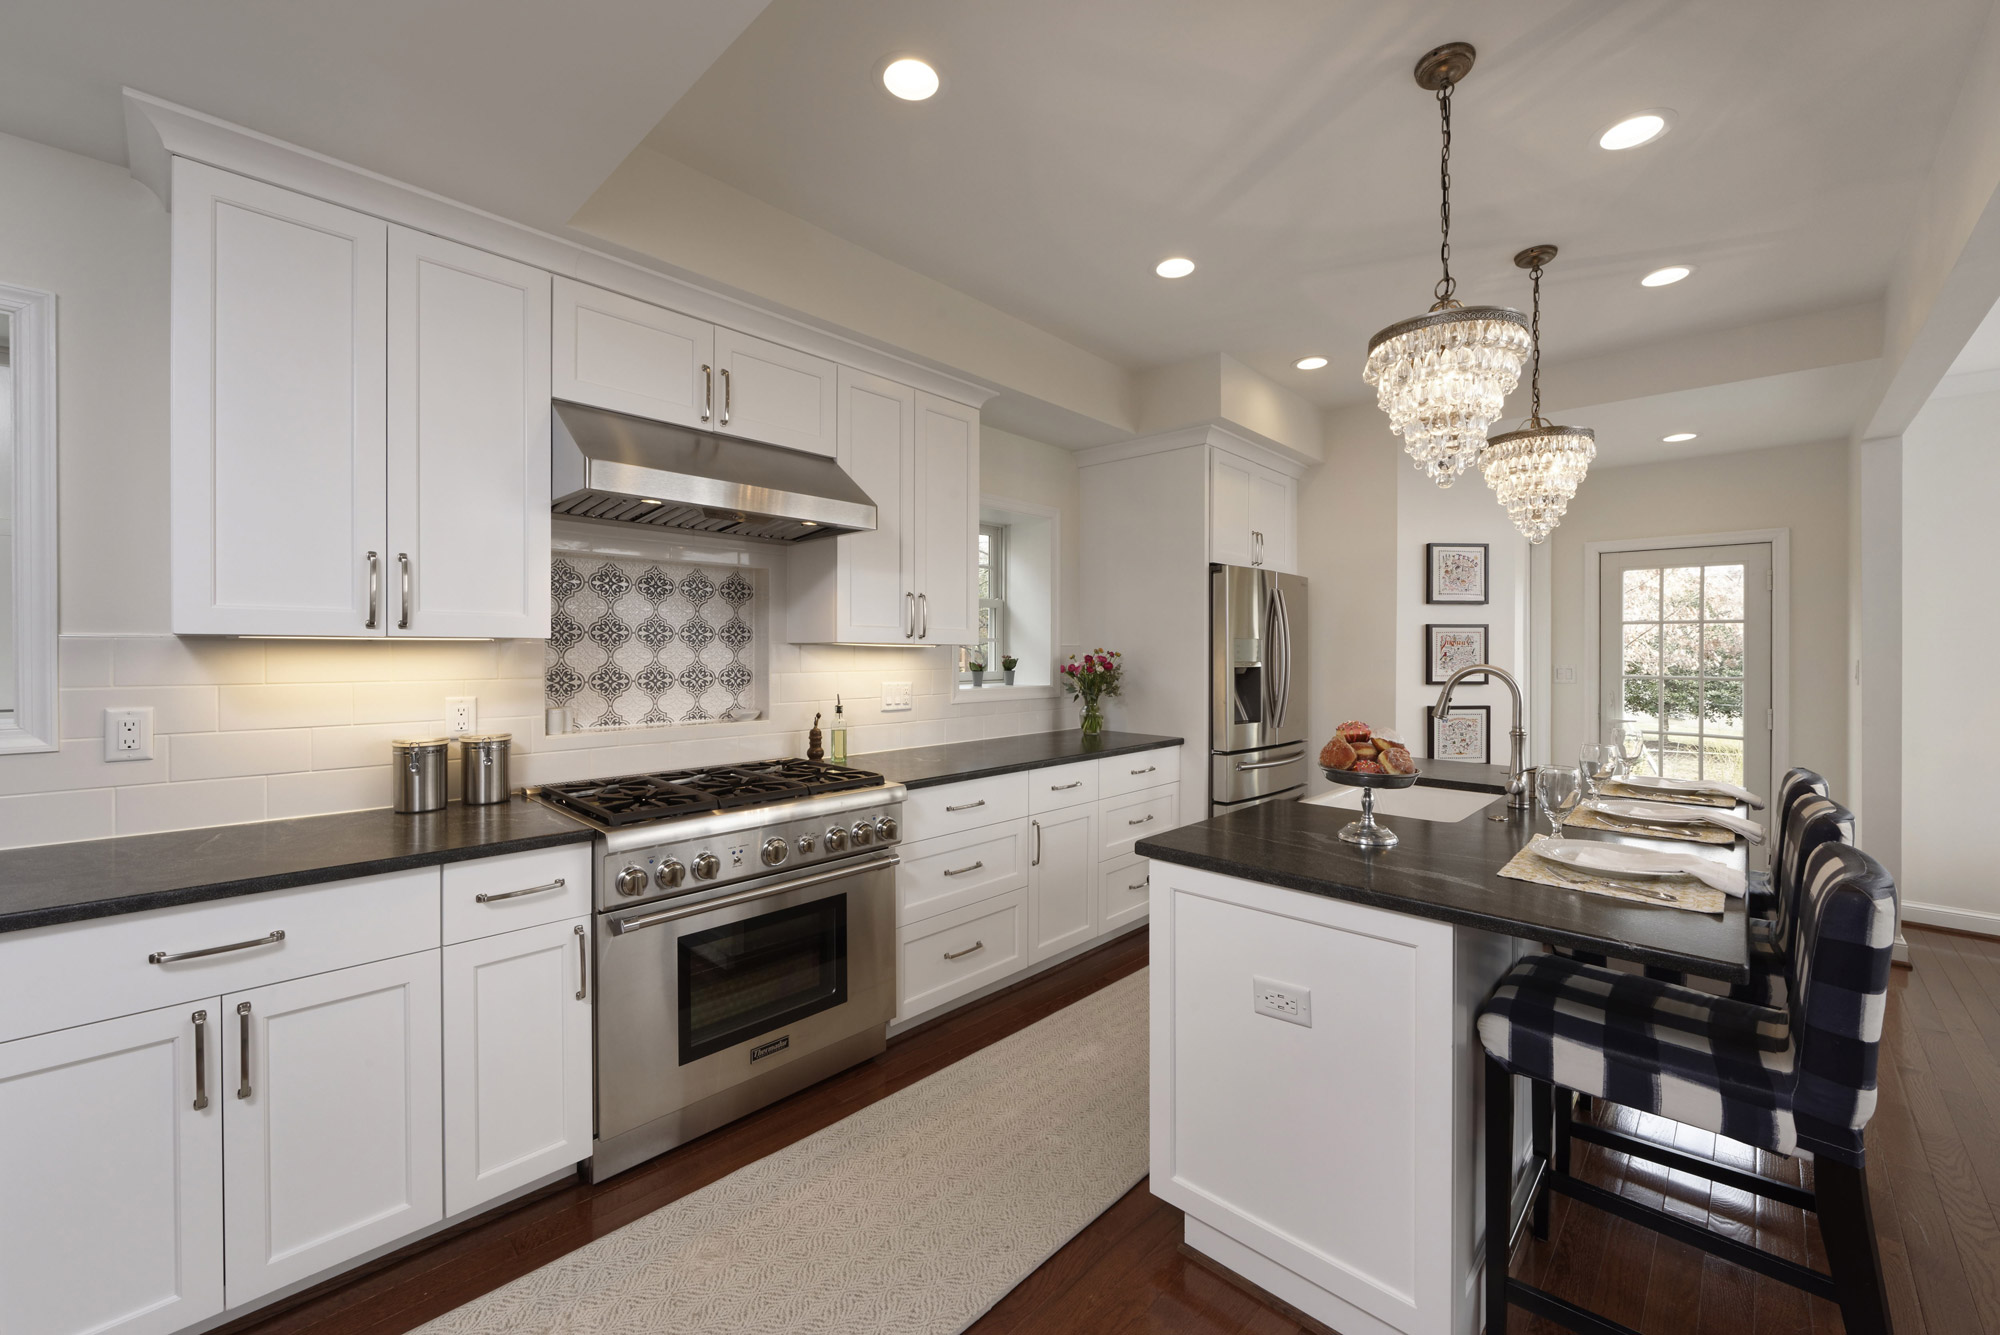 Opt For Smart Kitchen Remodeling Milwaukee WI To Enhance The Interior Look